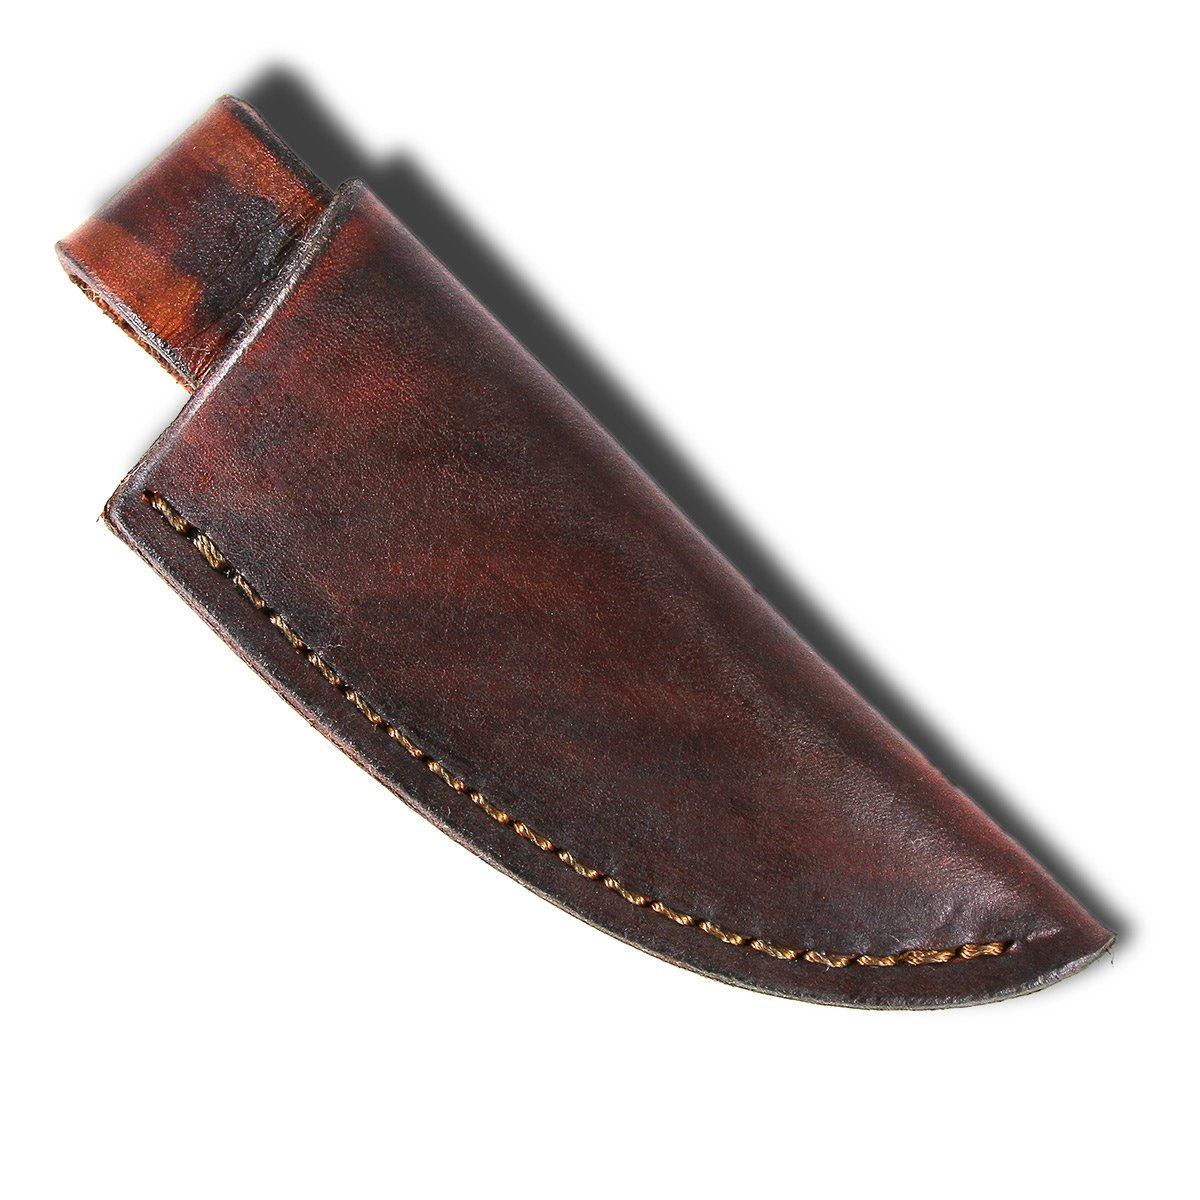 Finished Sheath Style #10 - Brown Leather - for knives with blades up to 1 1/4'' wide by 4'' long by MKS Leatherworks